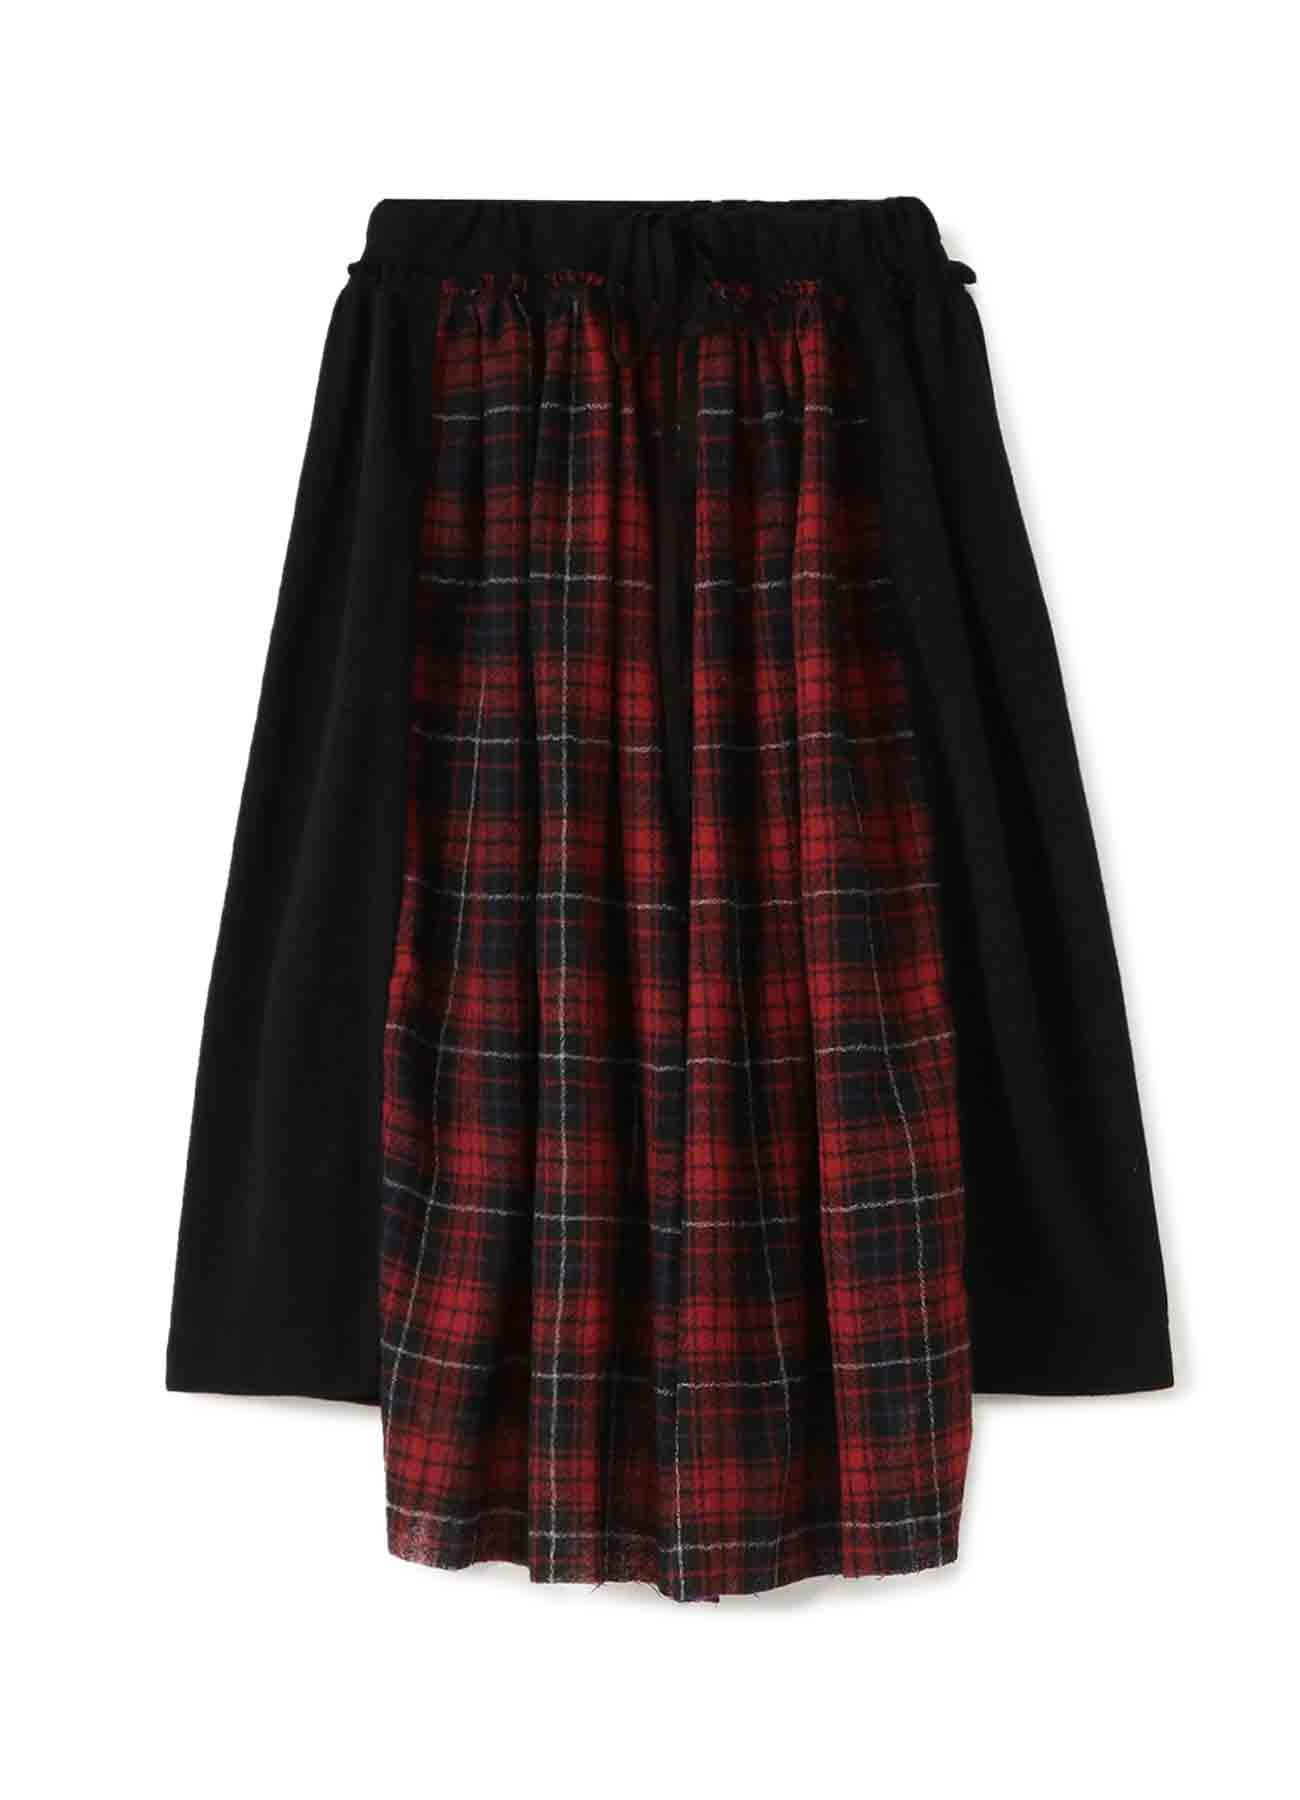 WOOL NYLON x PLAID GATHER SKIRT